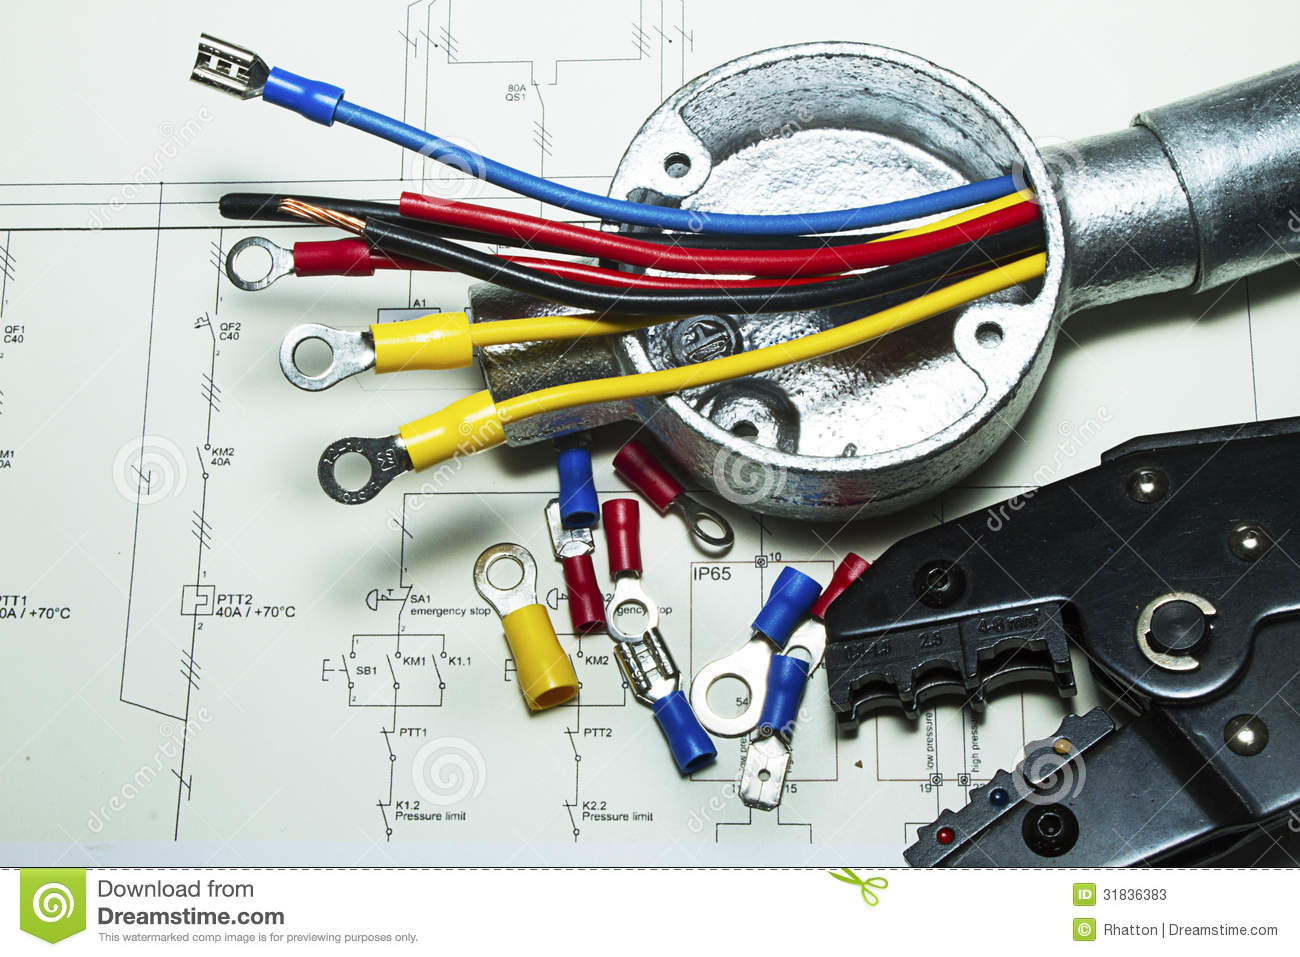 Electrical wiring stock photos image 31836383 for Electrical wiring new construction